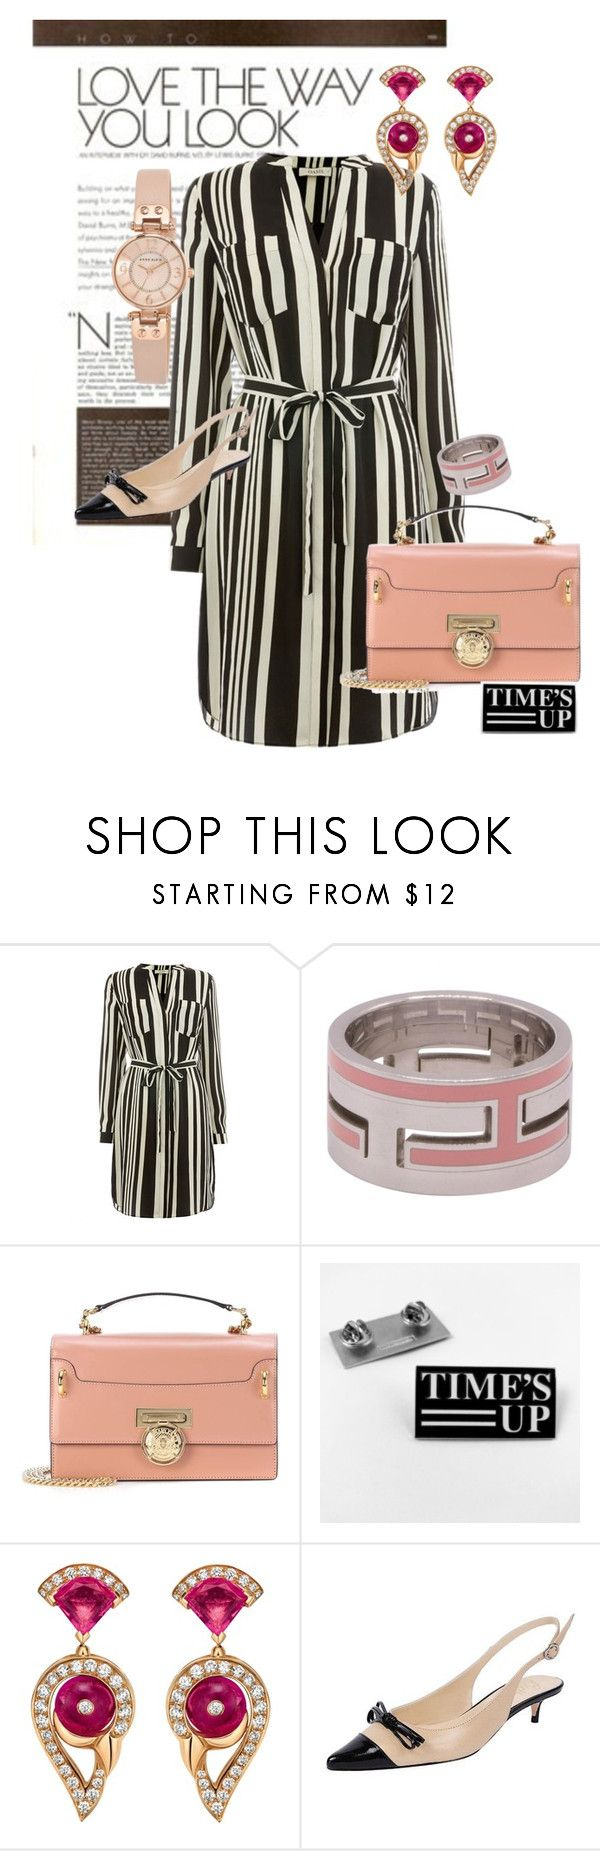 """Shirtdress with Pale Pink Accents"" by donna-capodelupo ❤ liked on Polyvore featuring Hermès, Balmain, Bulgari, Butter Shoes, Anne Klein, shirtdress, lovethewayyoulook and polyvorefashion"